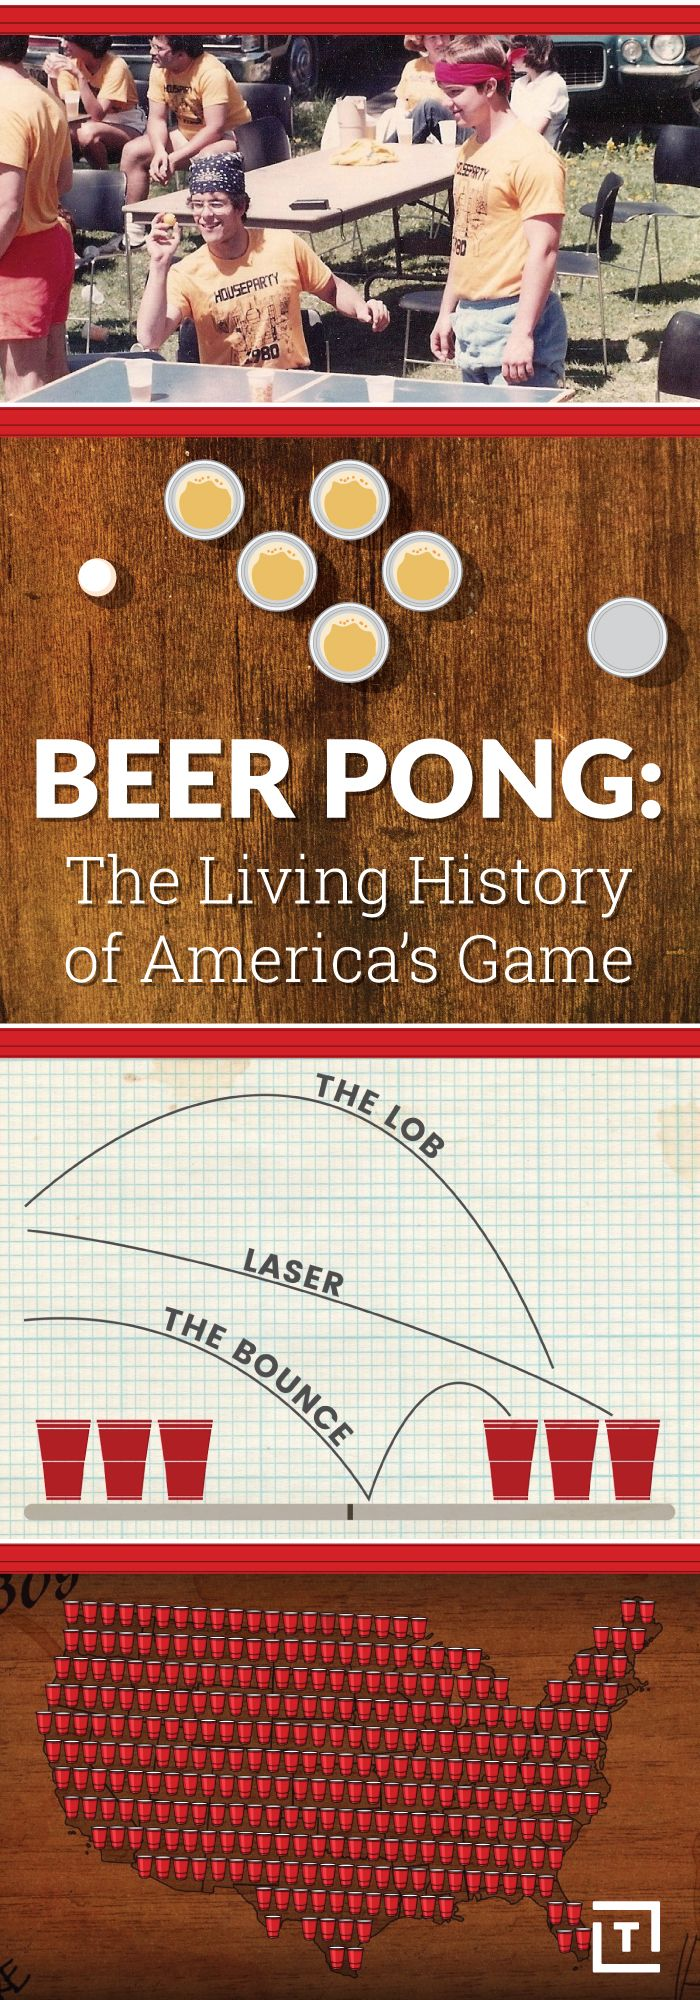 Best Beer Images On Pinterest Beer Lovers Craft Beer And Beer - Four corners drinking game